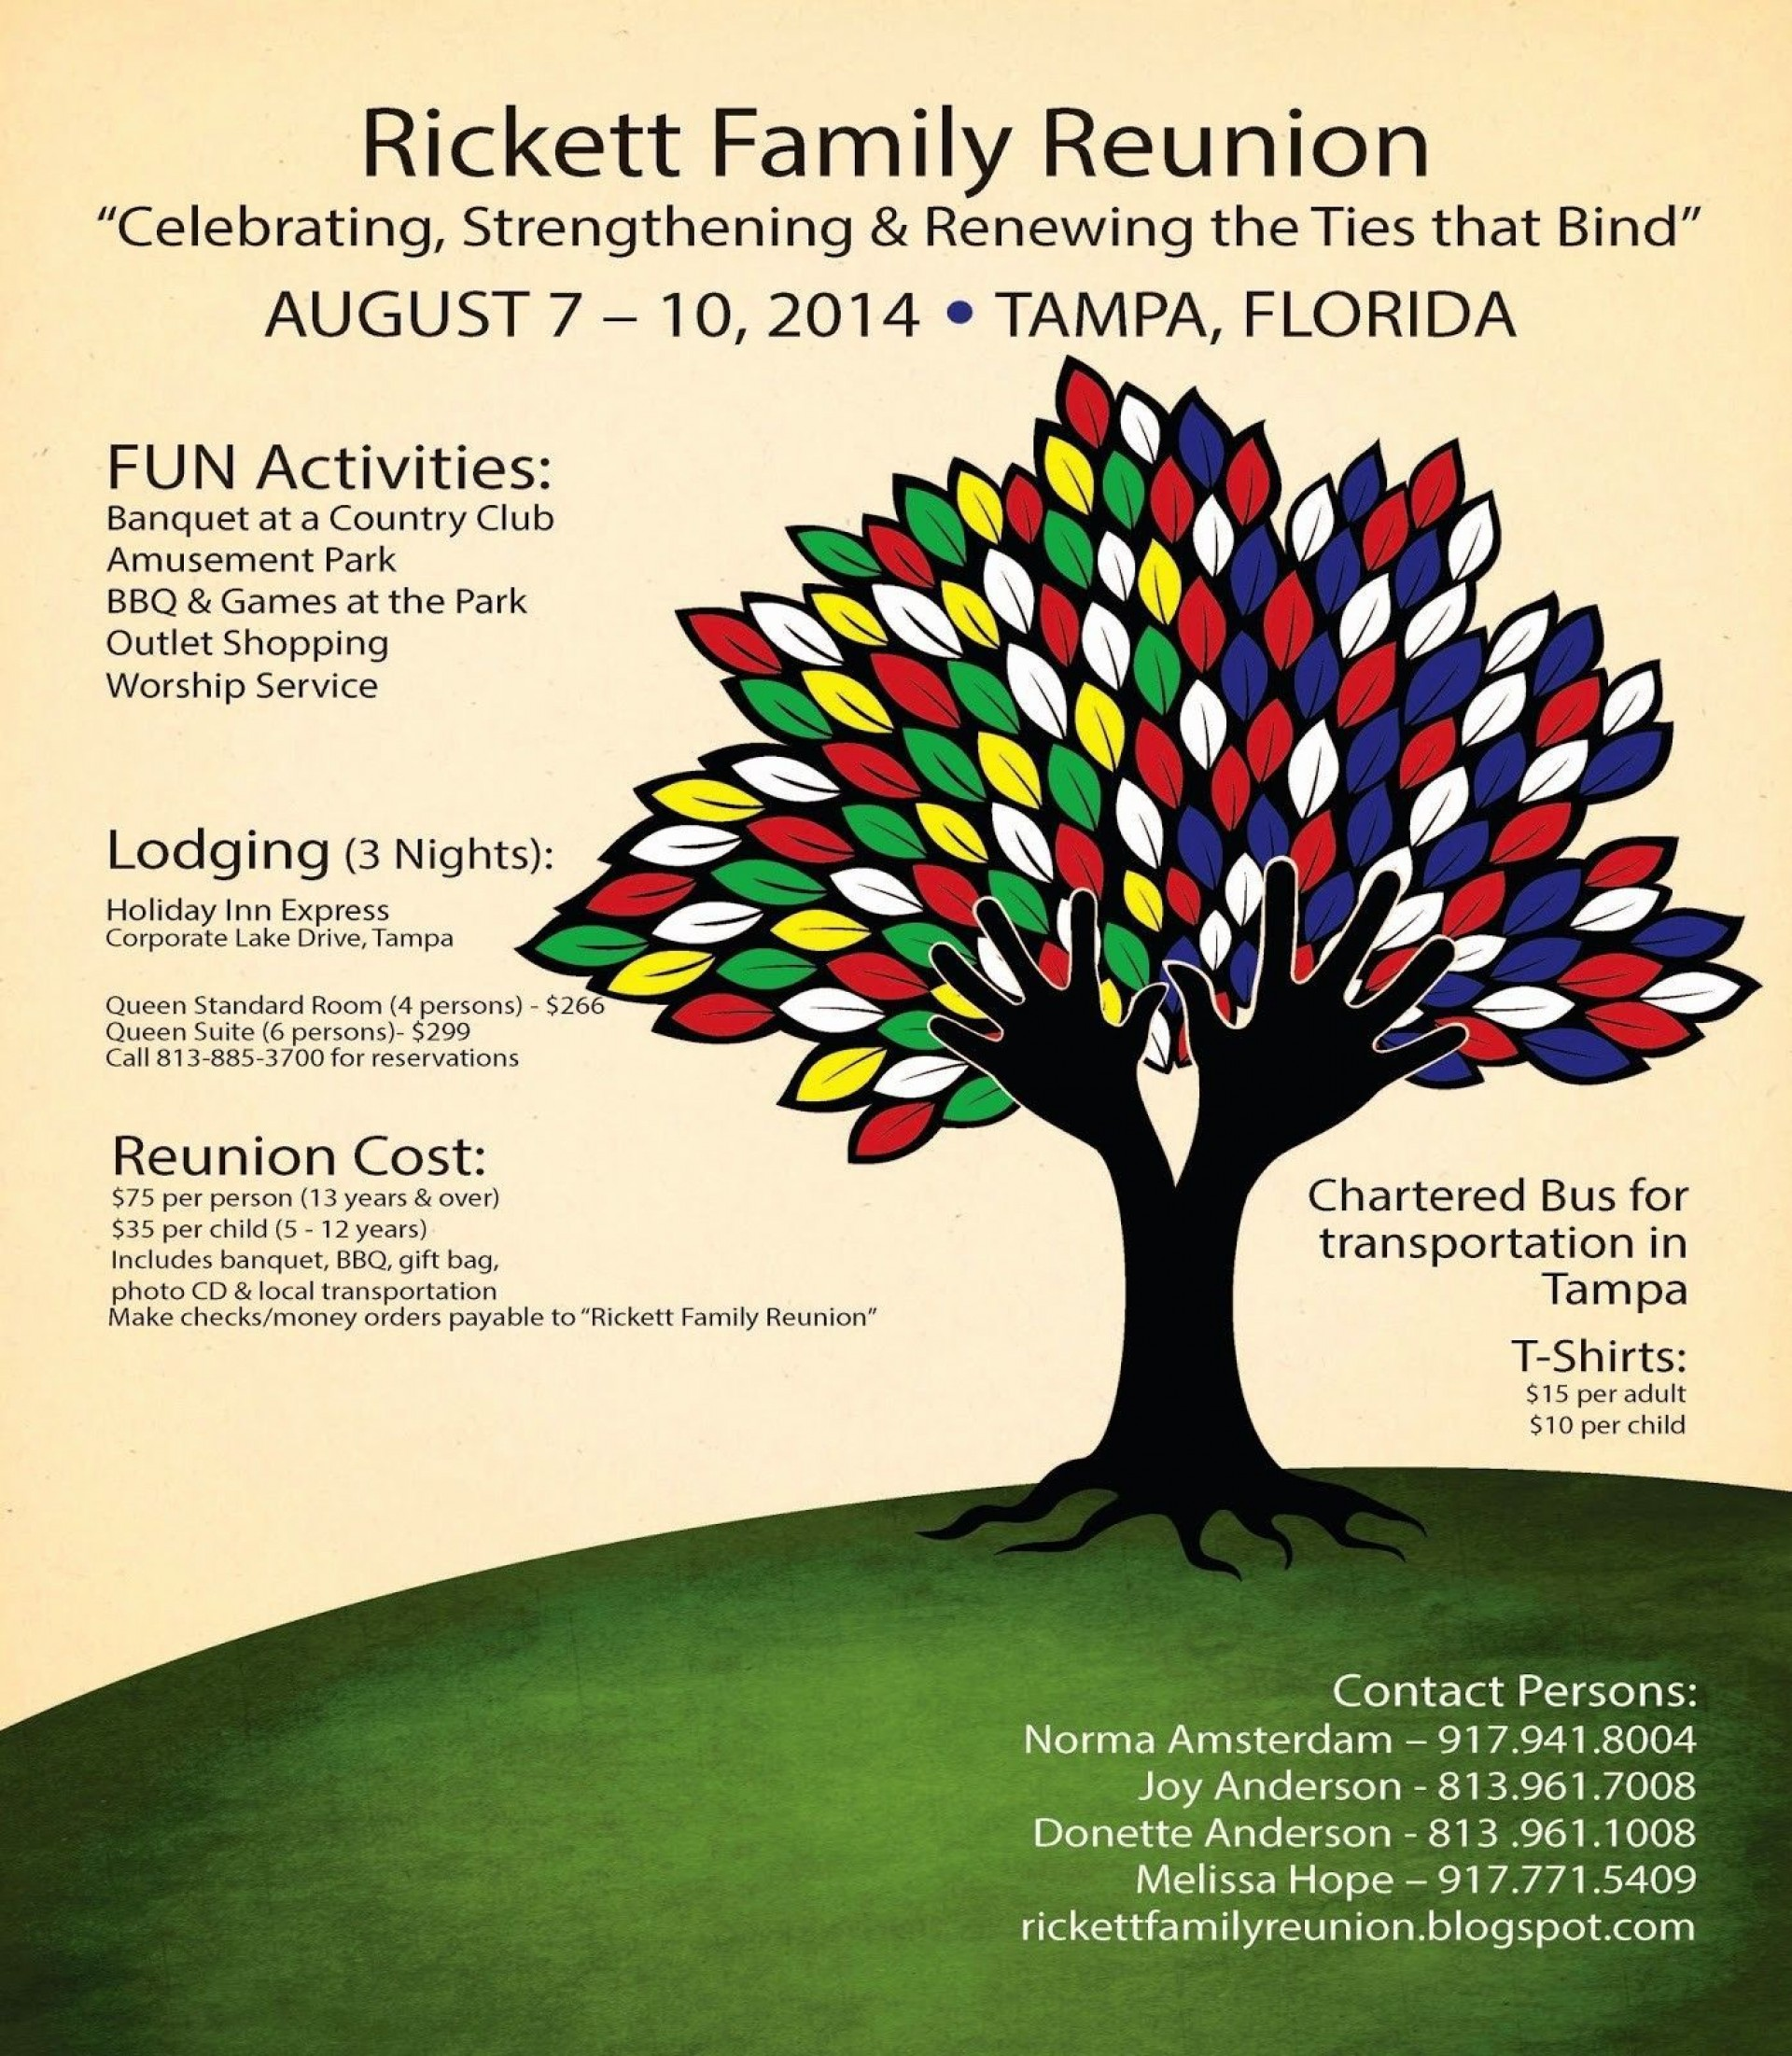 000 Exceptional Family Reunion Flyer Template Word Idea 1920